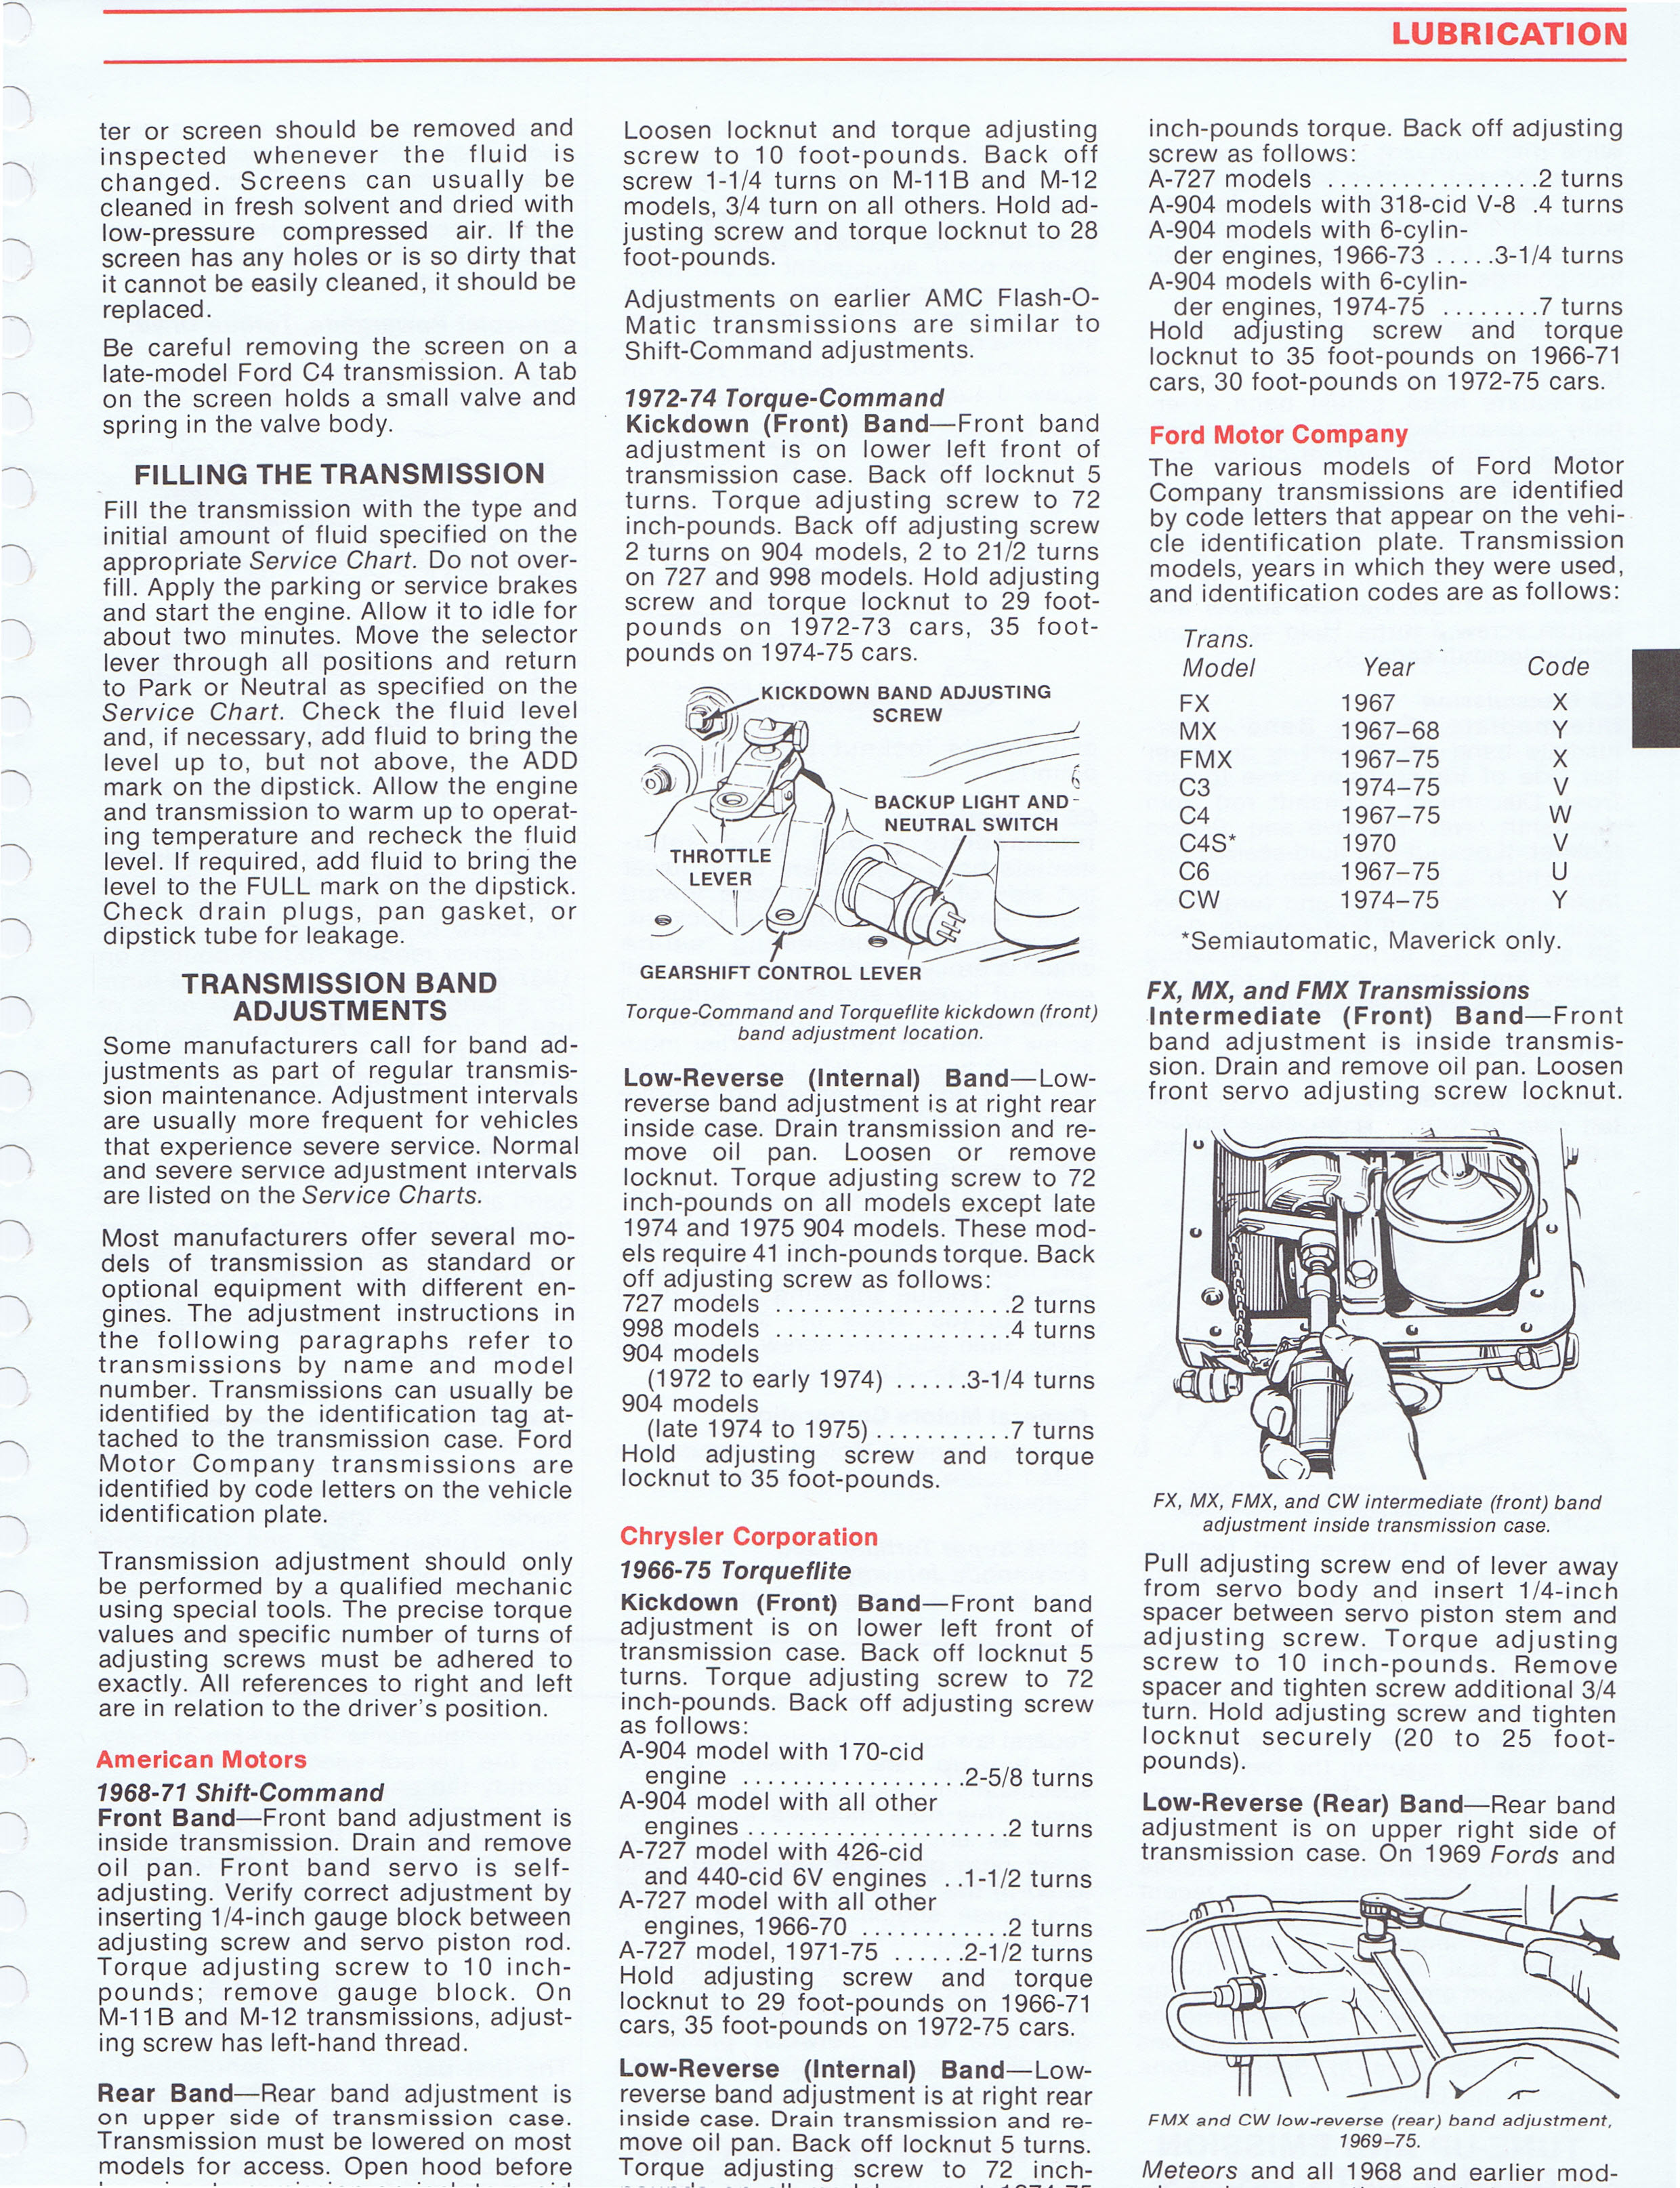 1975 Esso Car Care Guide 1966 75 Cars Page 10 Of 234 Ford Backup Light Switch Location Full Size Image